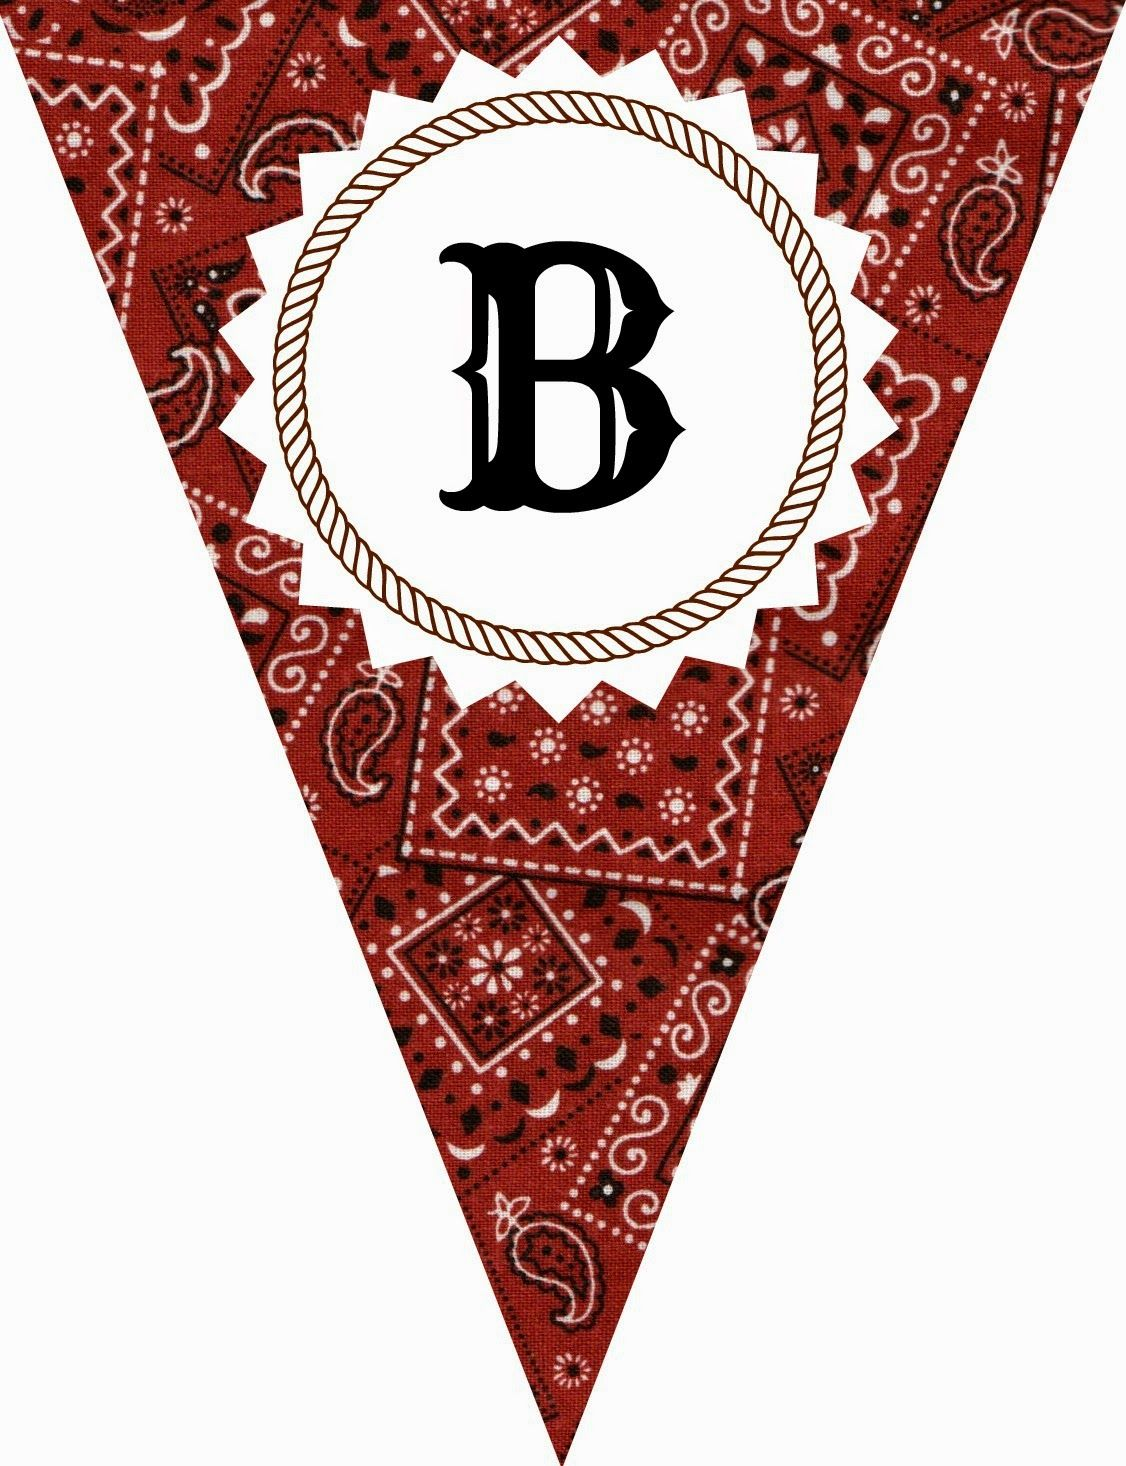 62993f23da4c1 FREE Printable Western-Themed Pennant Banner (includes all letters and  numbers)